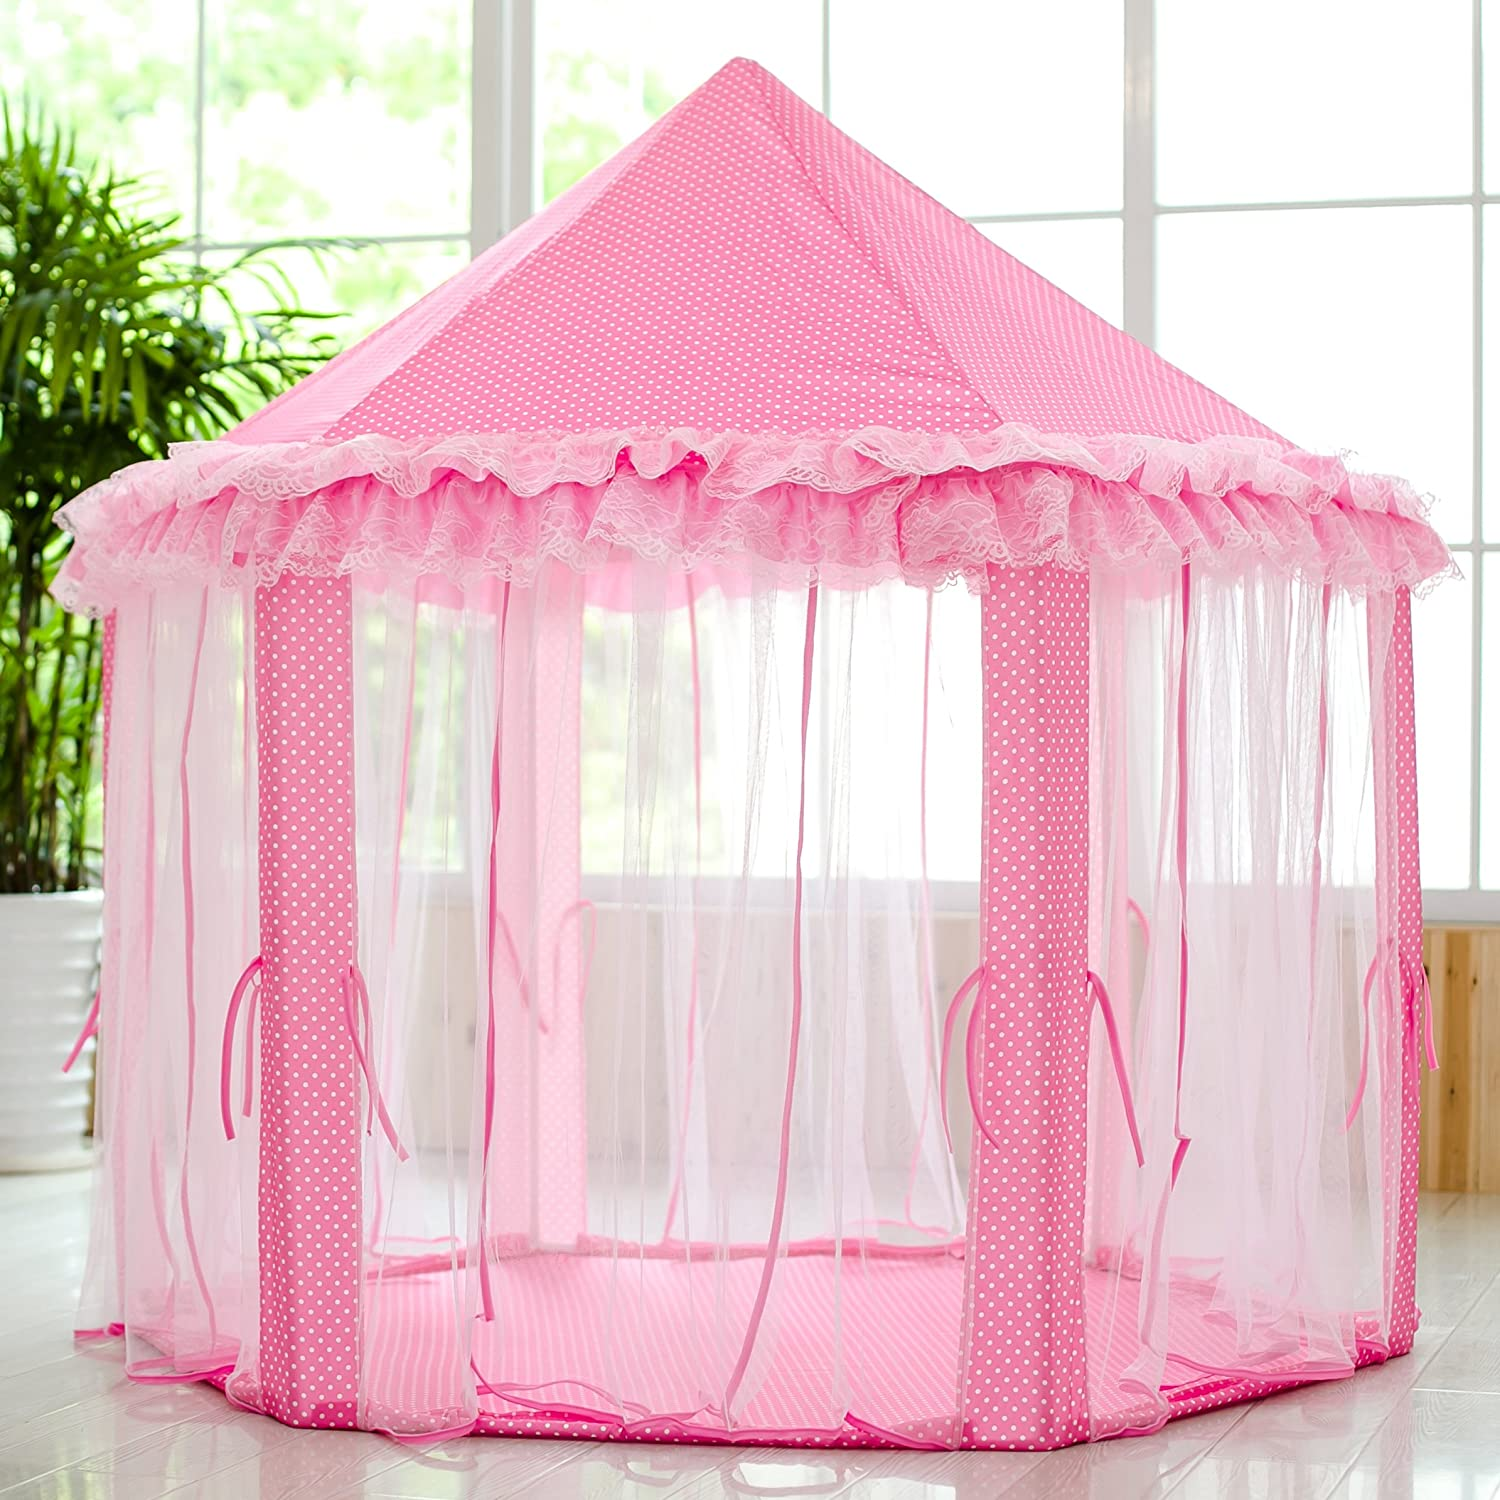 Amazon.com SkyeyArc Princess Playhouse With Lace Pink Tent Princess Castle Play Tent Castle Playhouse Kids Tents Great Christmas Gifts For Kids Toys ...  sc 1 st  Amazon.com & Amazon.com: SkyeyArc Princess Playhouse With Lace Pink Tent ...